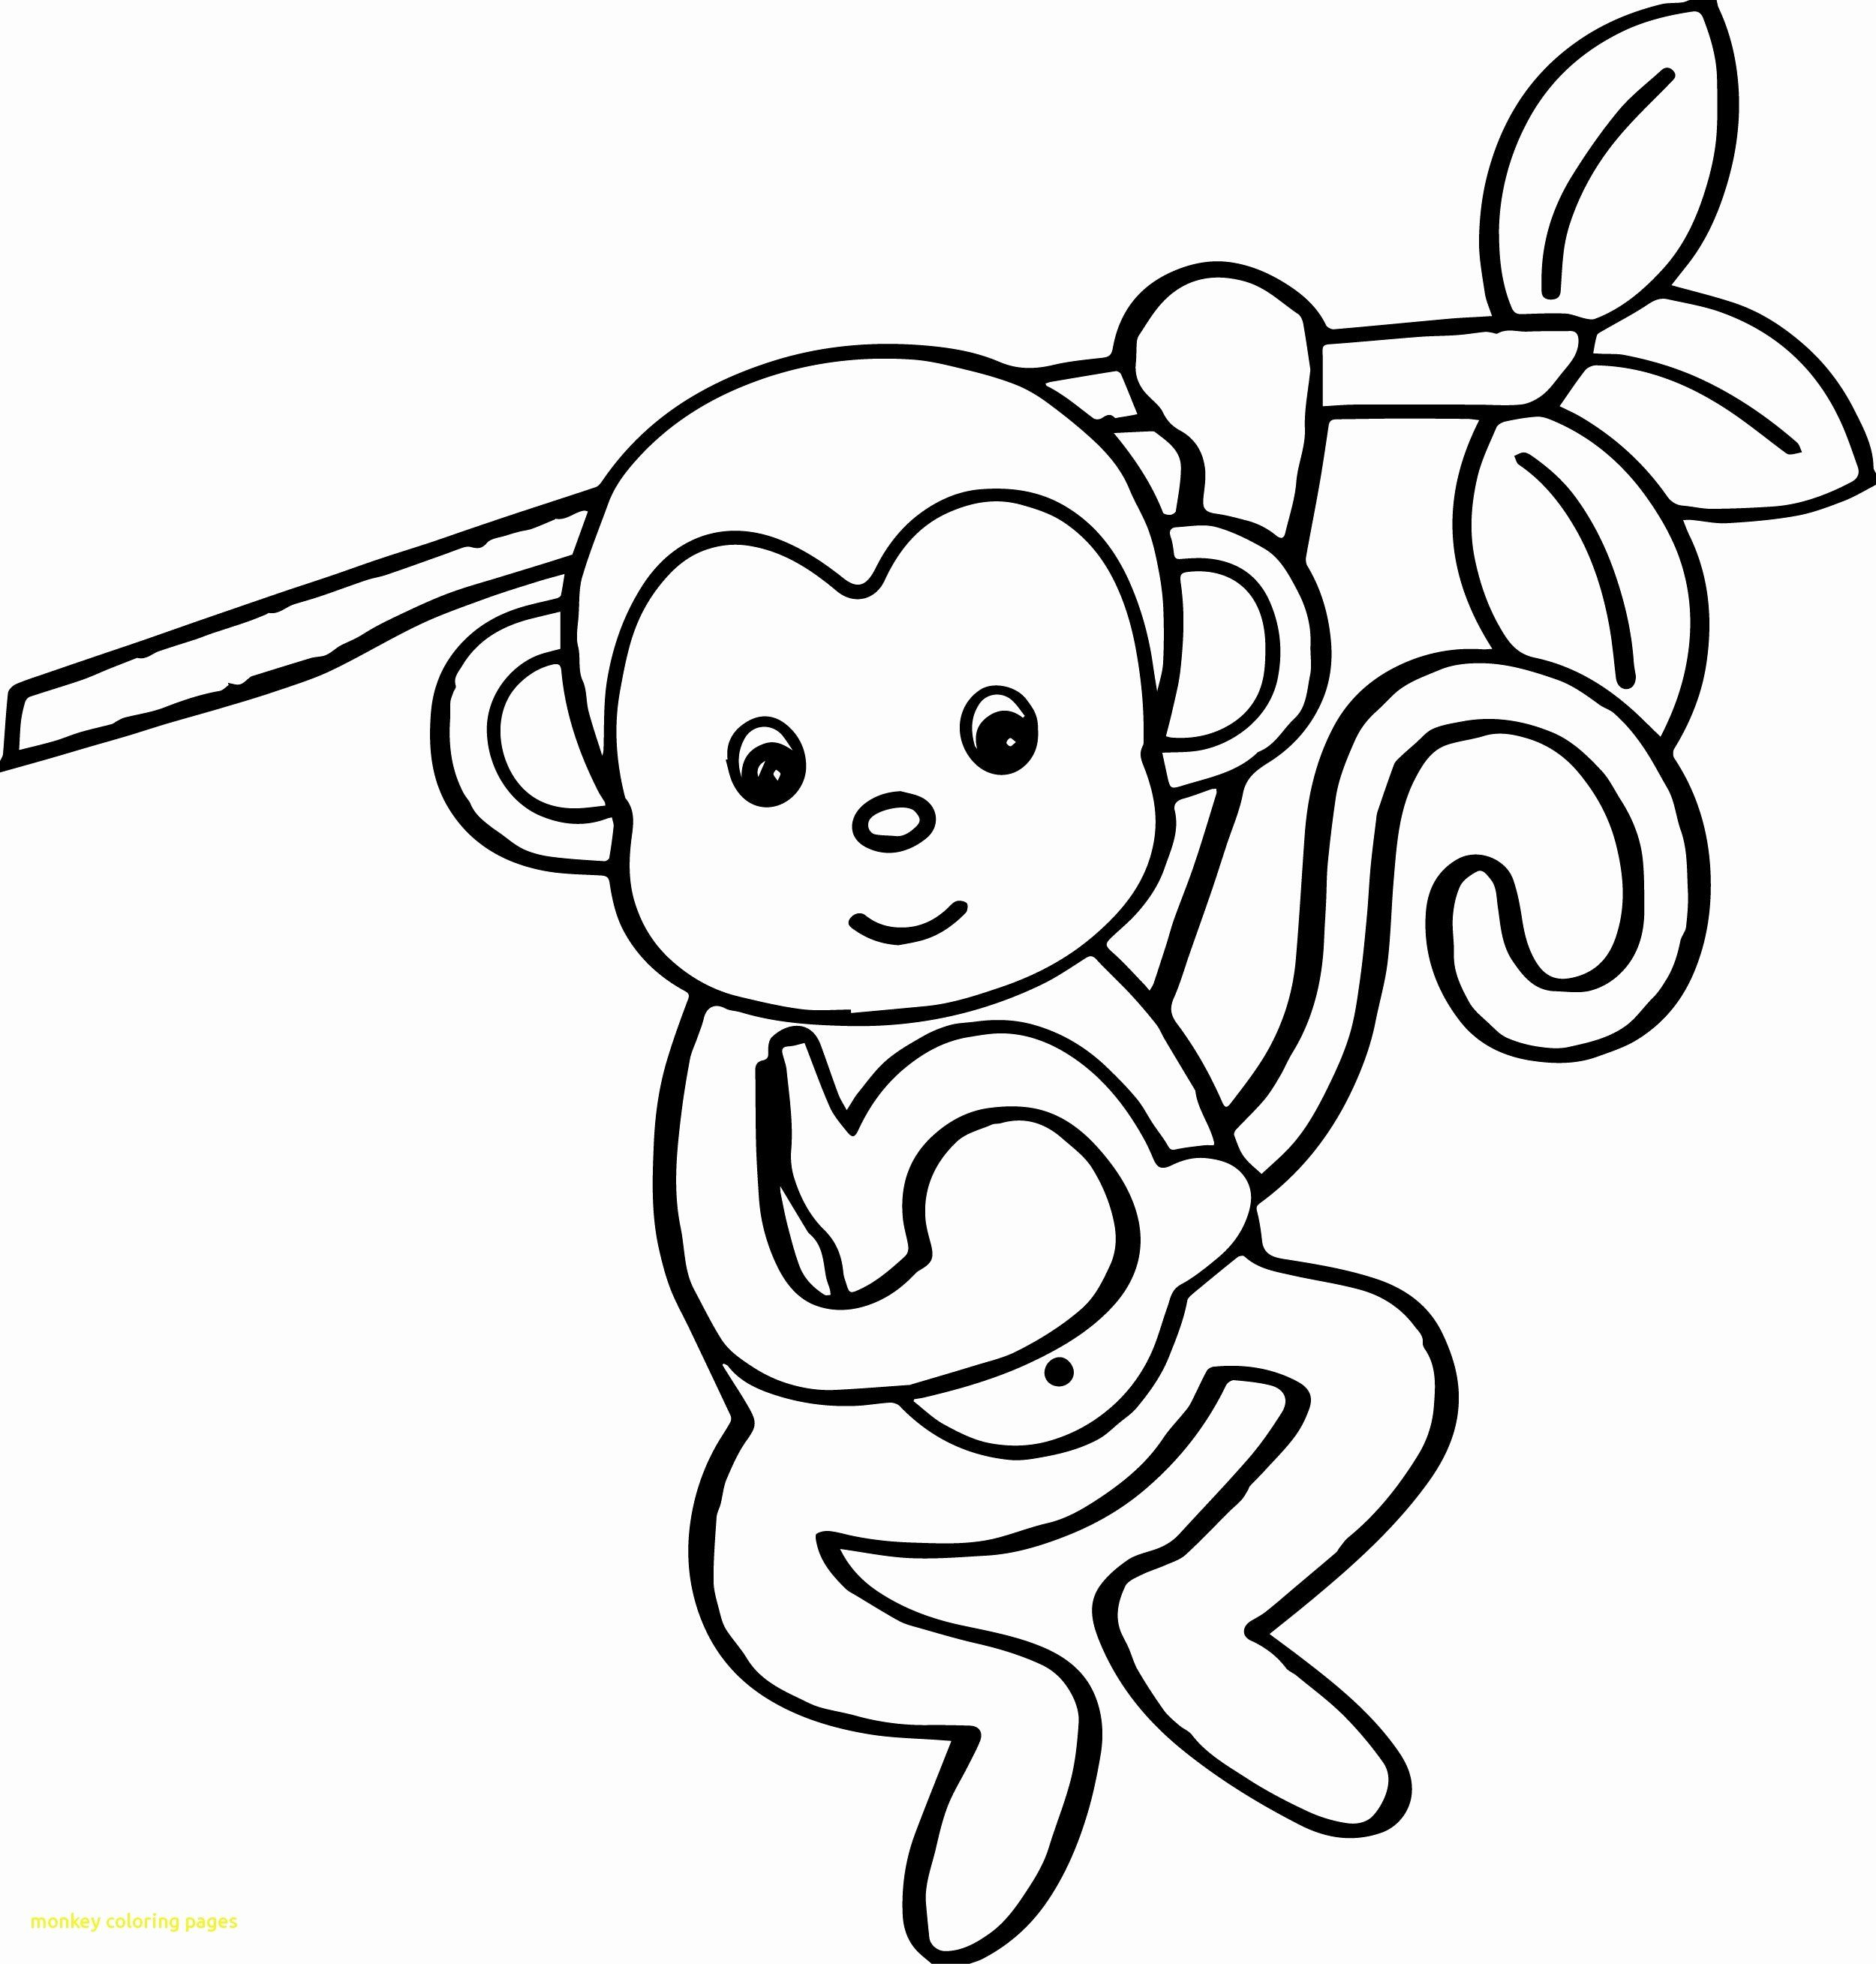 Coloring Pages On Monkeys Awesome Archive with Tag Monkey Puzzle